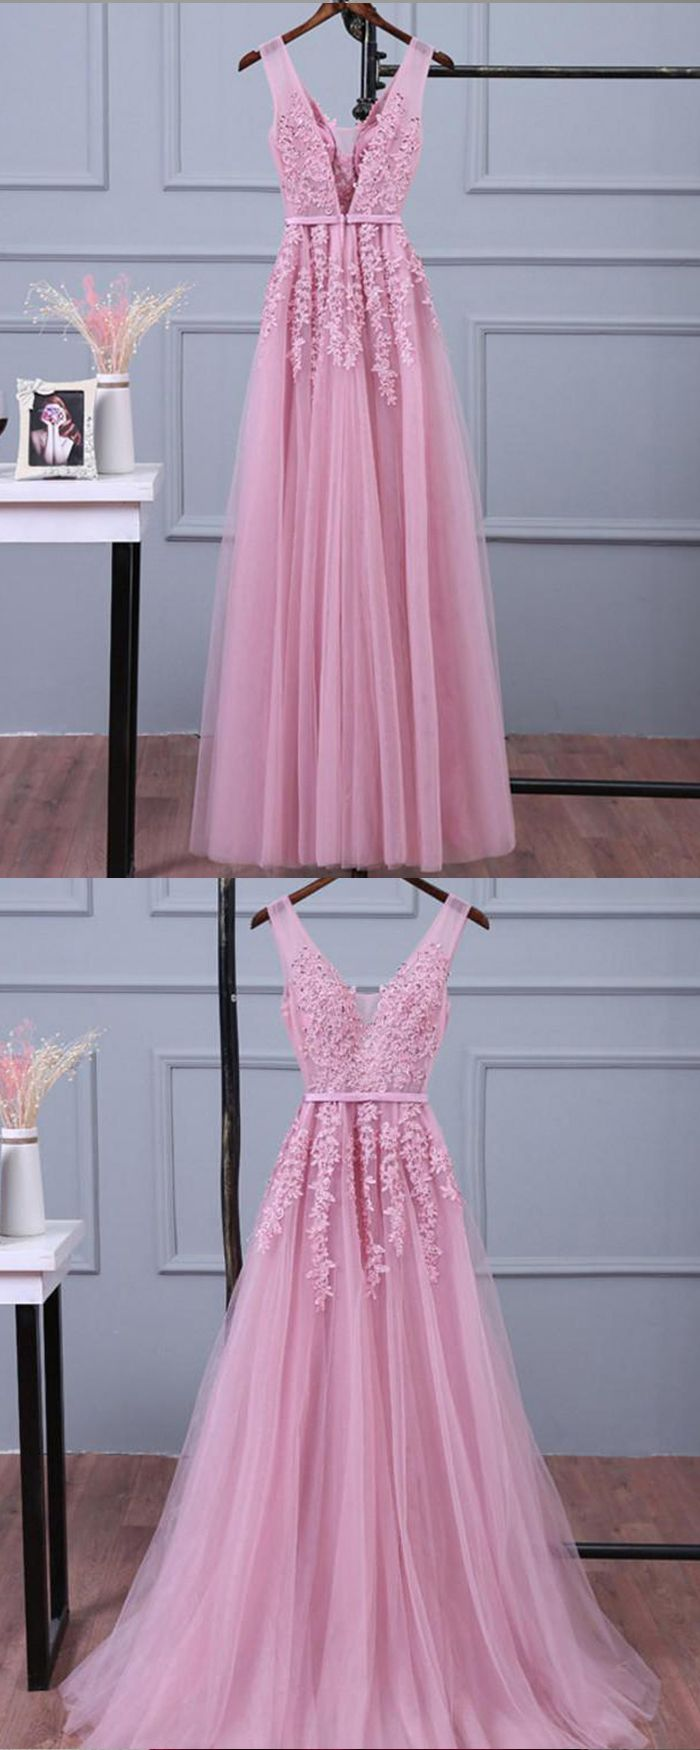 Vneck lace appliqued tulle pink long prom dress pm in